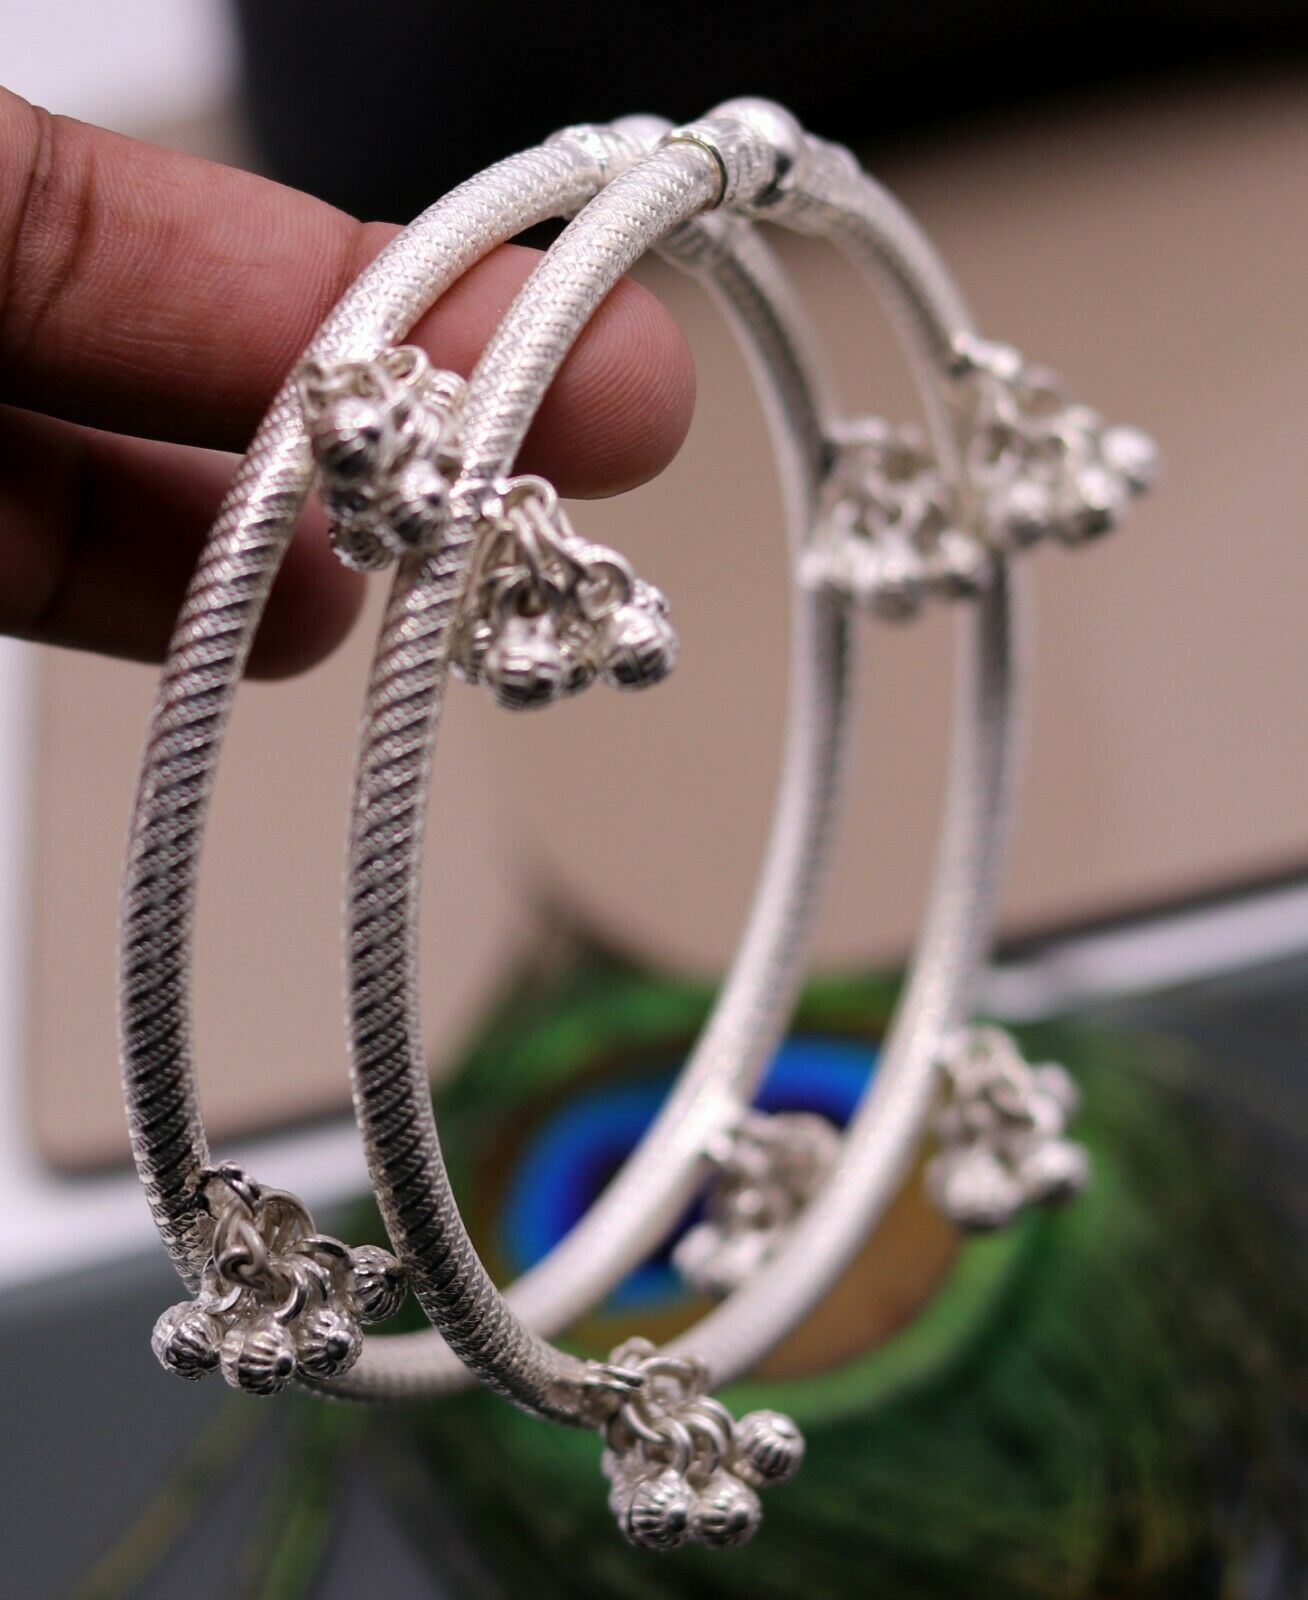 HANGING NOISY BELLS SILVER FOOT INDIAN BELLY DANCE ANKLE BRACELET JEWELRY nsfk10